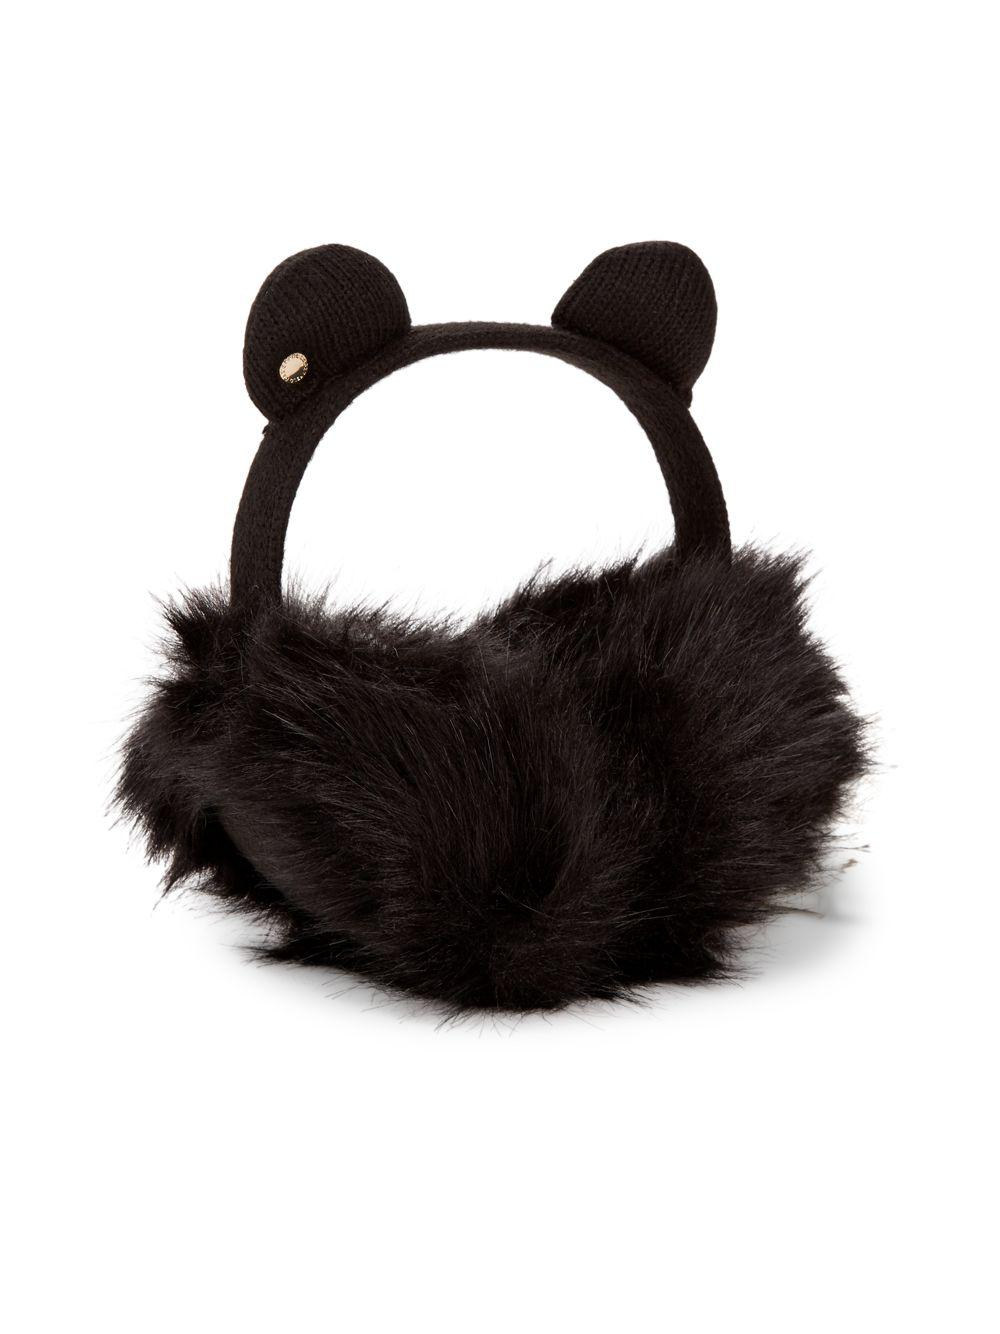 c5726df331e Lyst - Karl Lagerfeld Faux Fur Kitty Earmuffs in Black